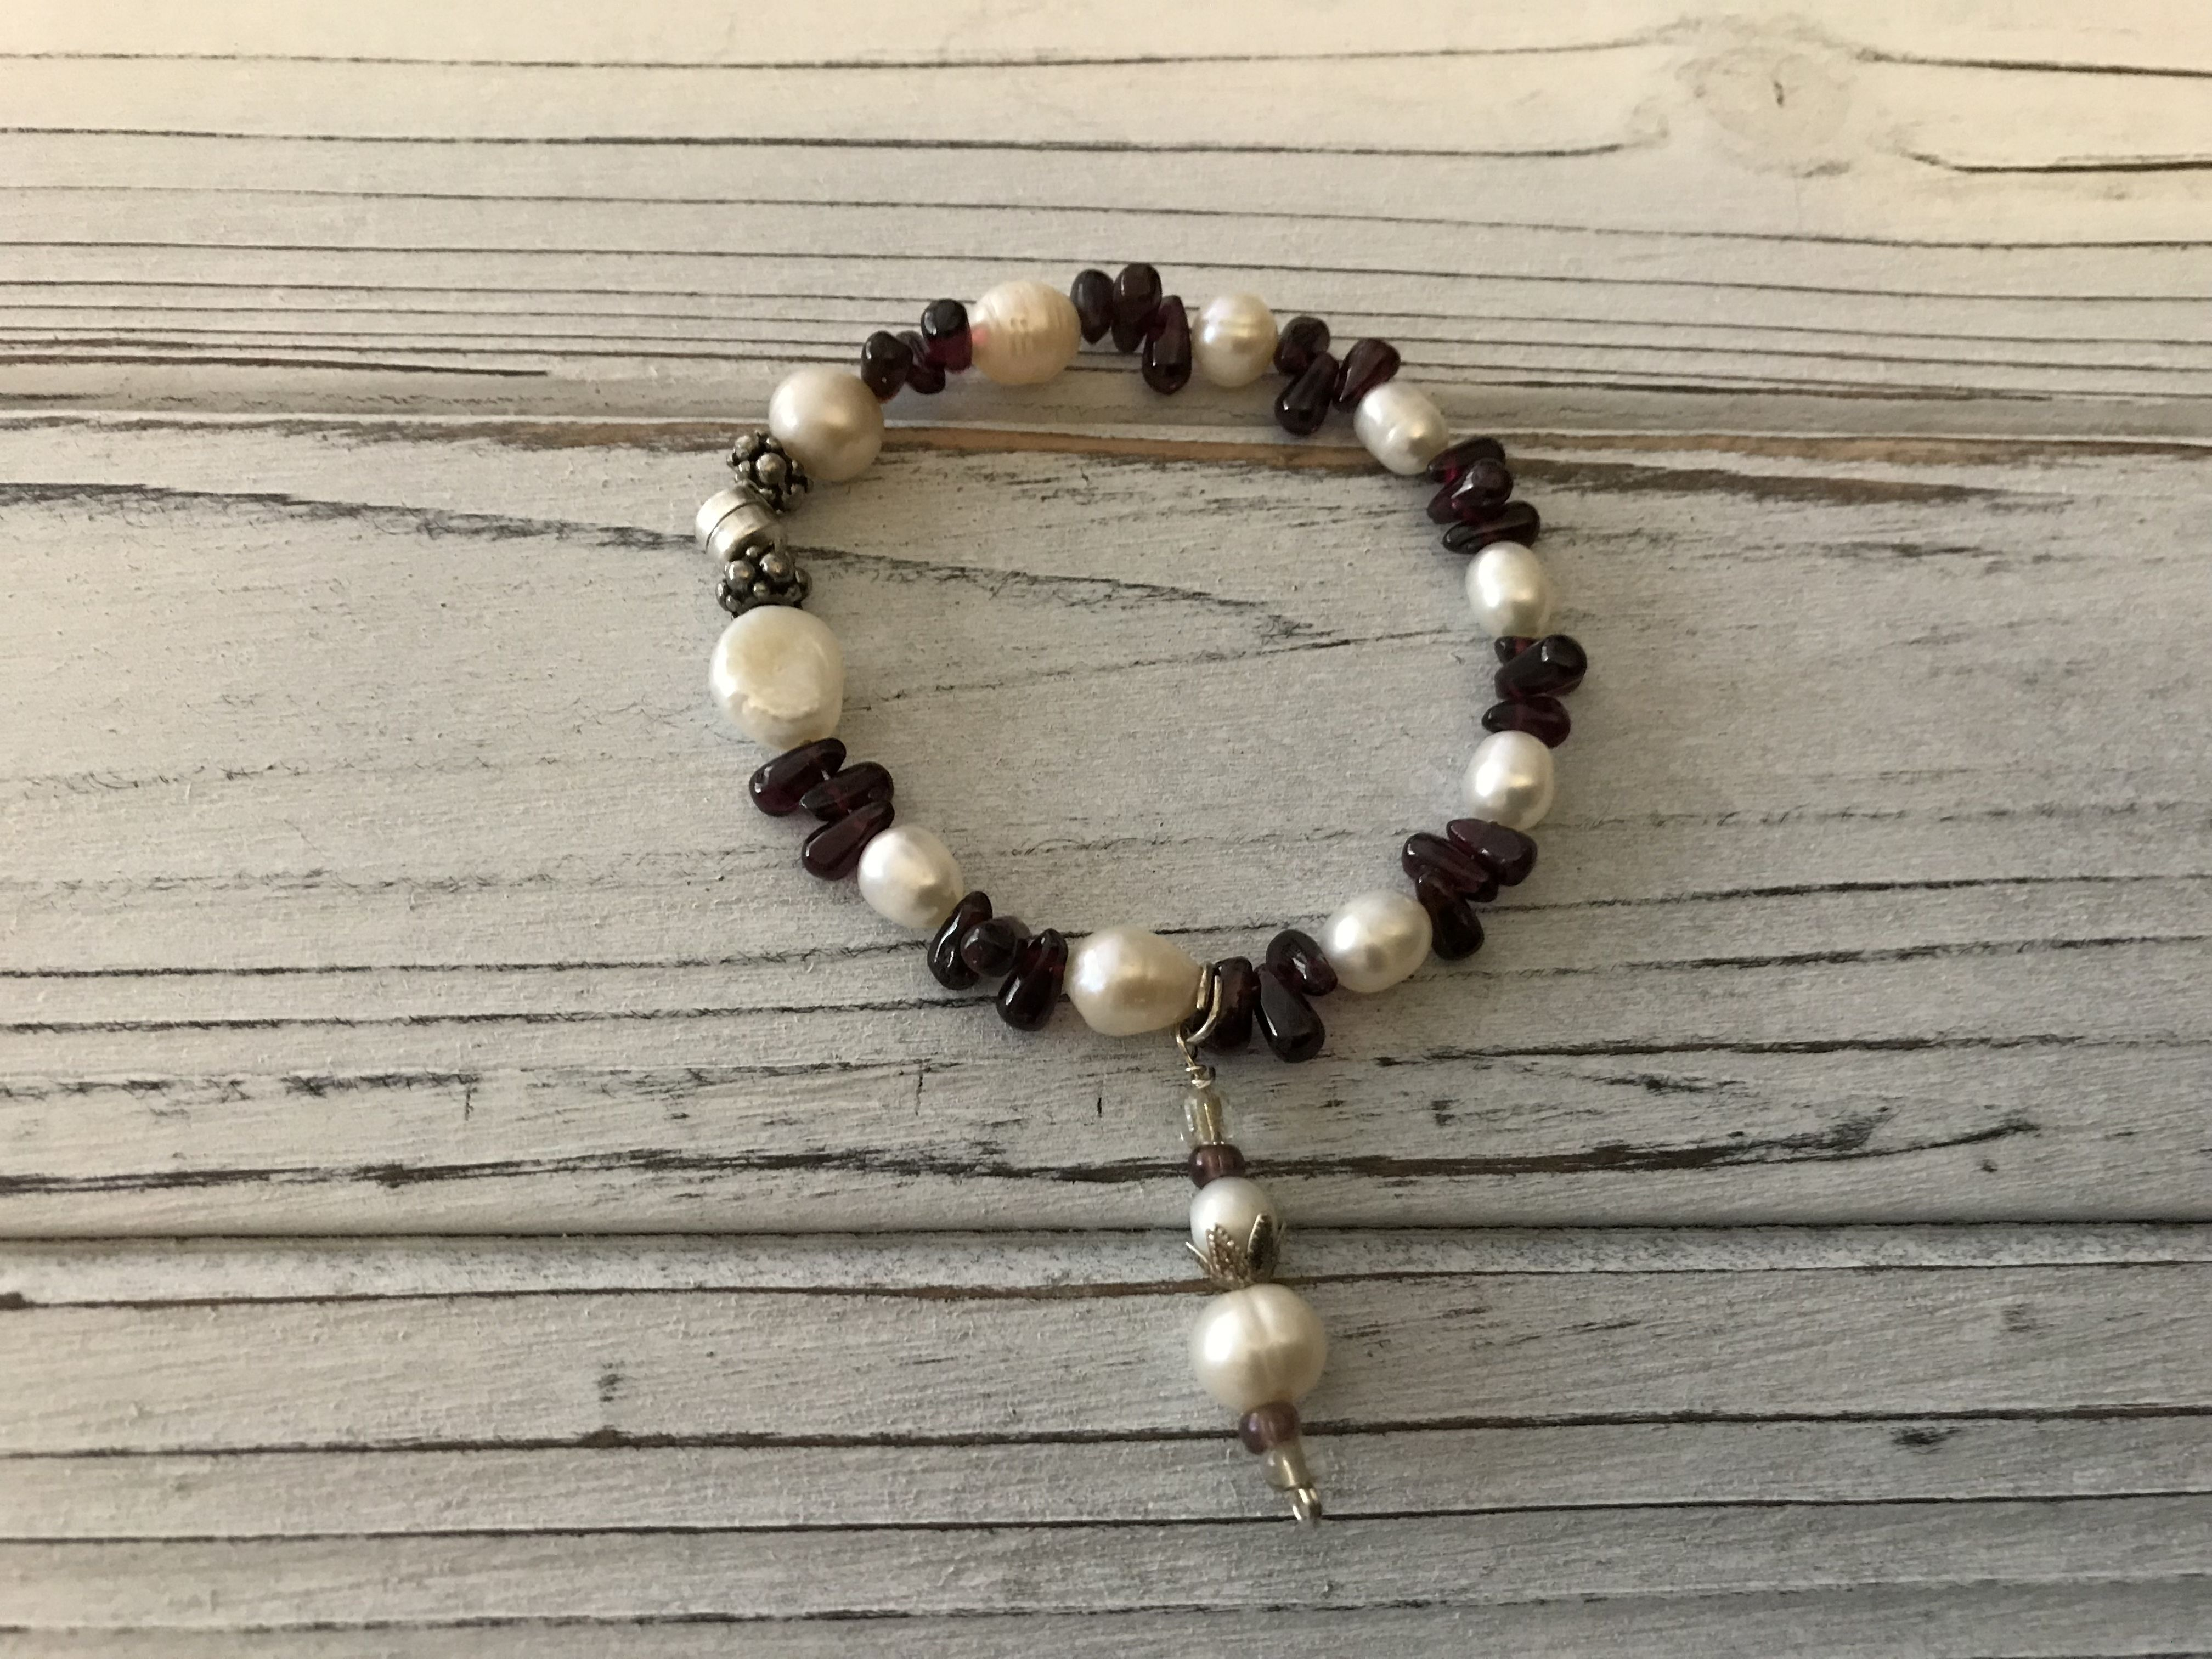 madewithlove loveandlight emotional cooltotouch lovepearls handmade confidence uniquebracelet magnetclasp garnet health